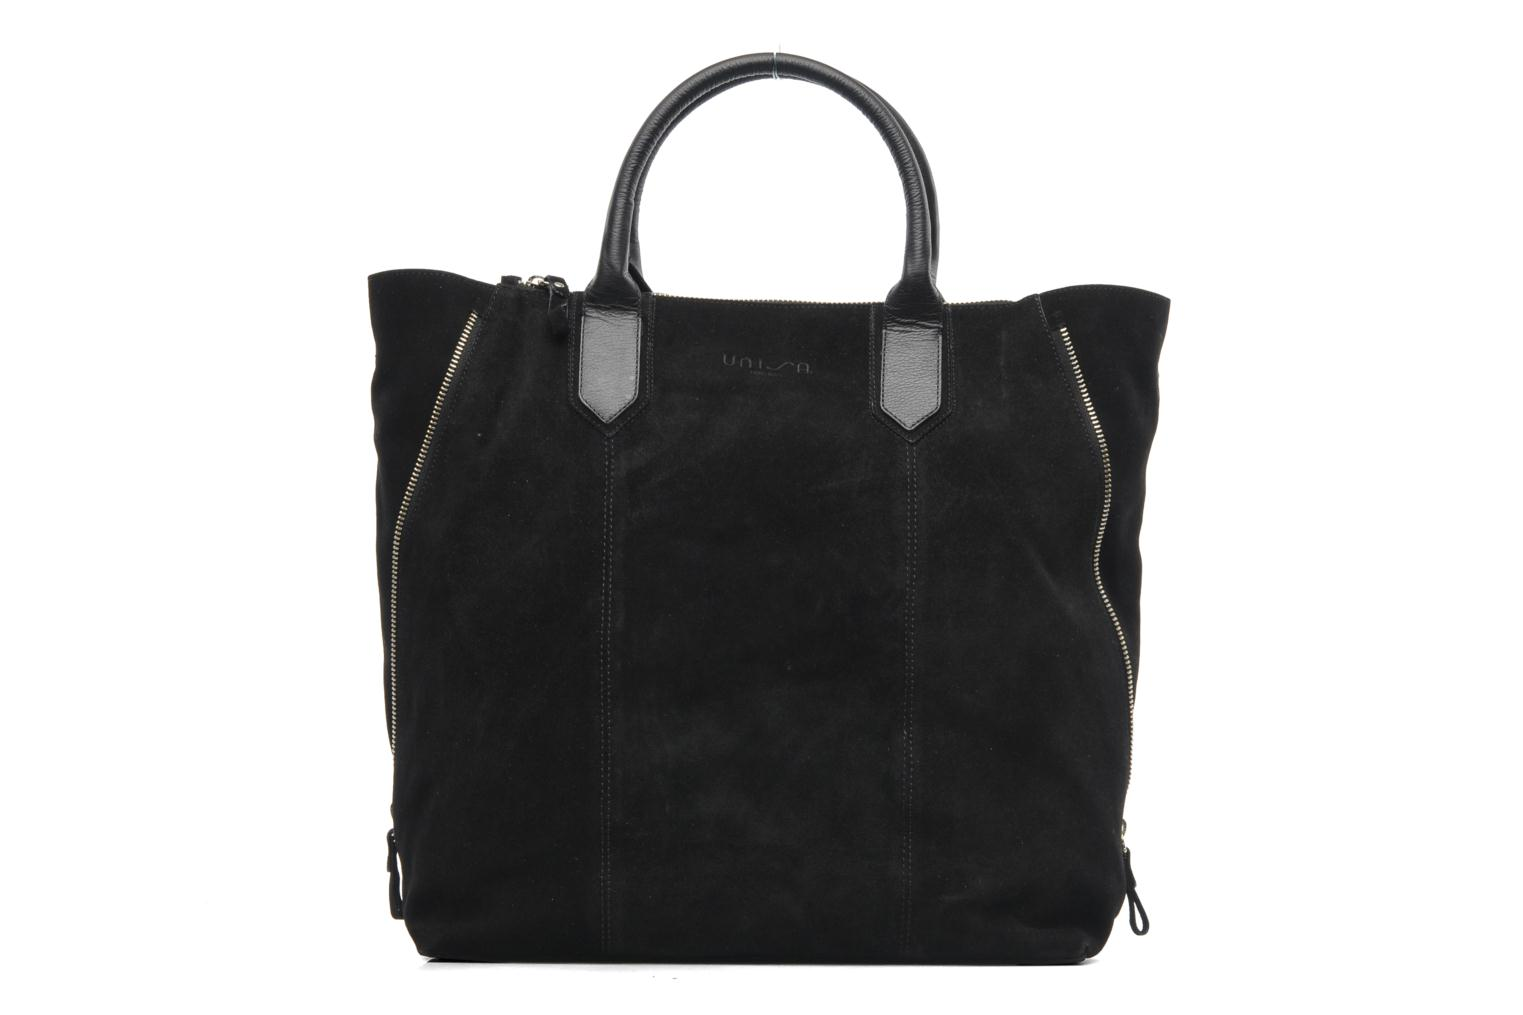 Zmuscat Baby suede black